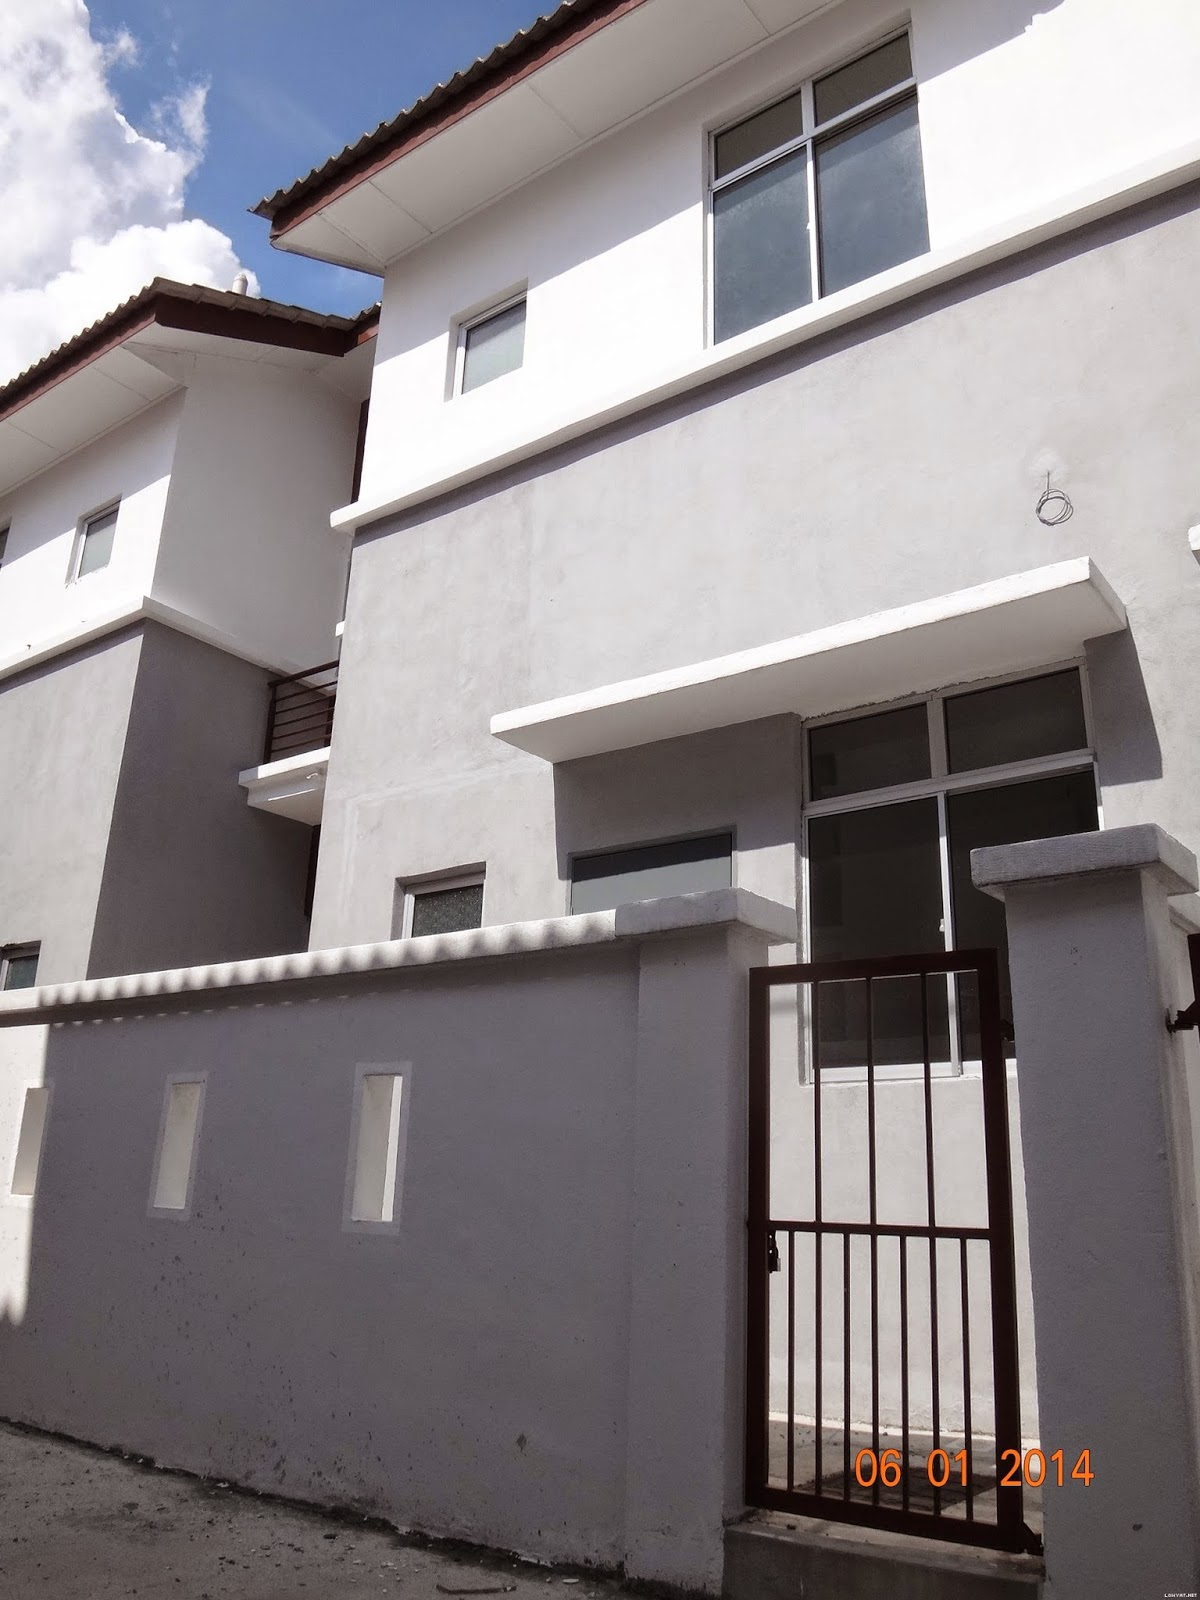 Malaysia Home Renovation Blog: 2 Storey Terrace House